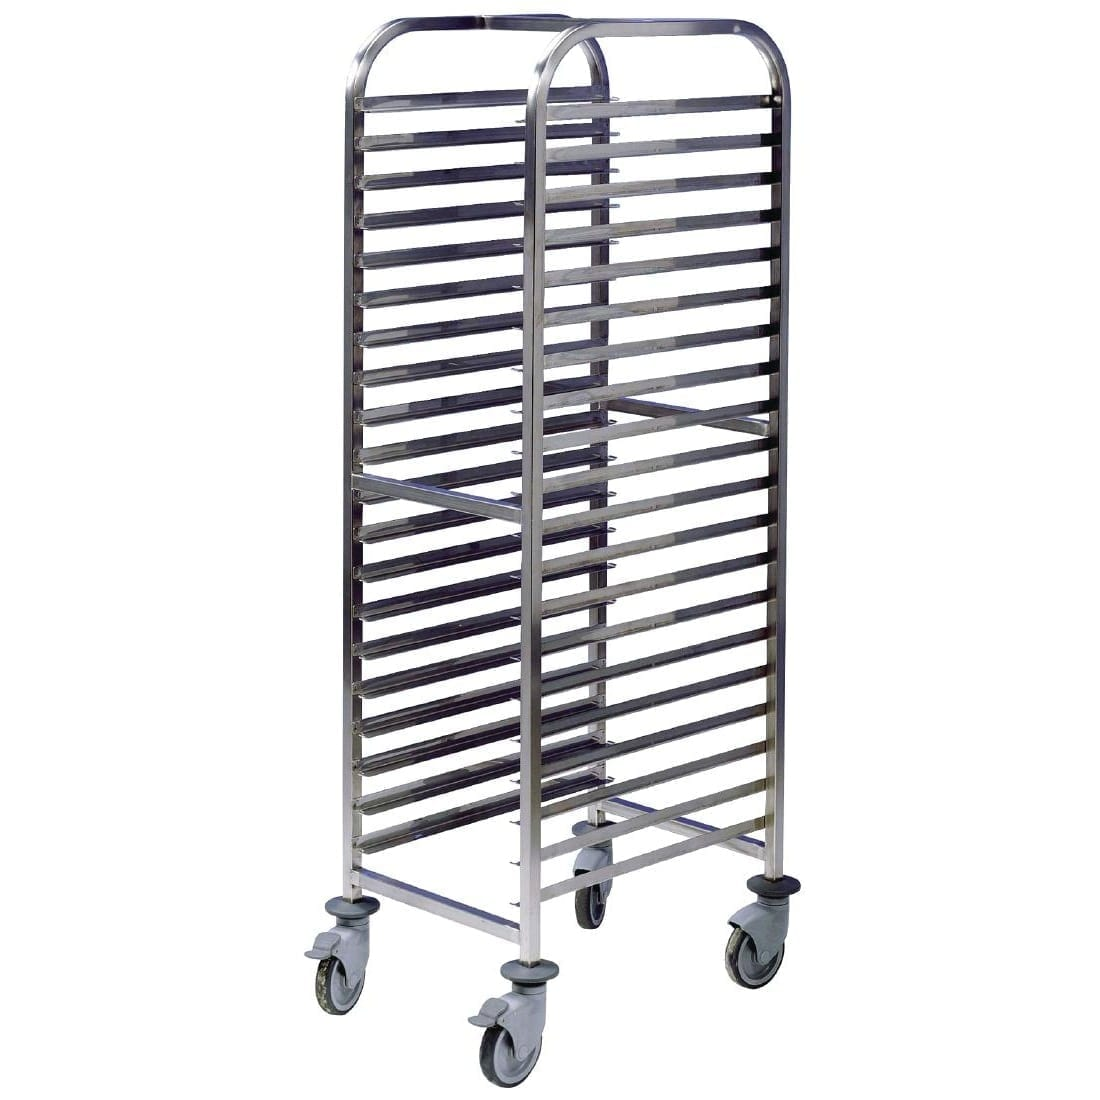 EAIS St/St - 600x400 (profile 400mm) Trolley (Direct)-0